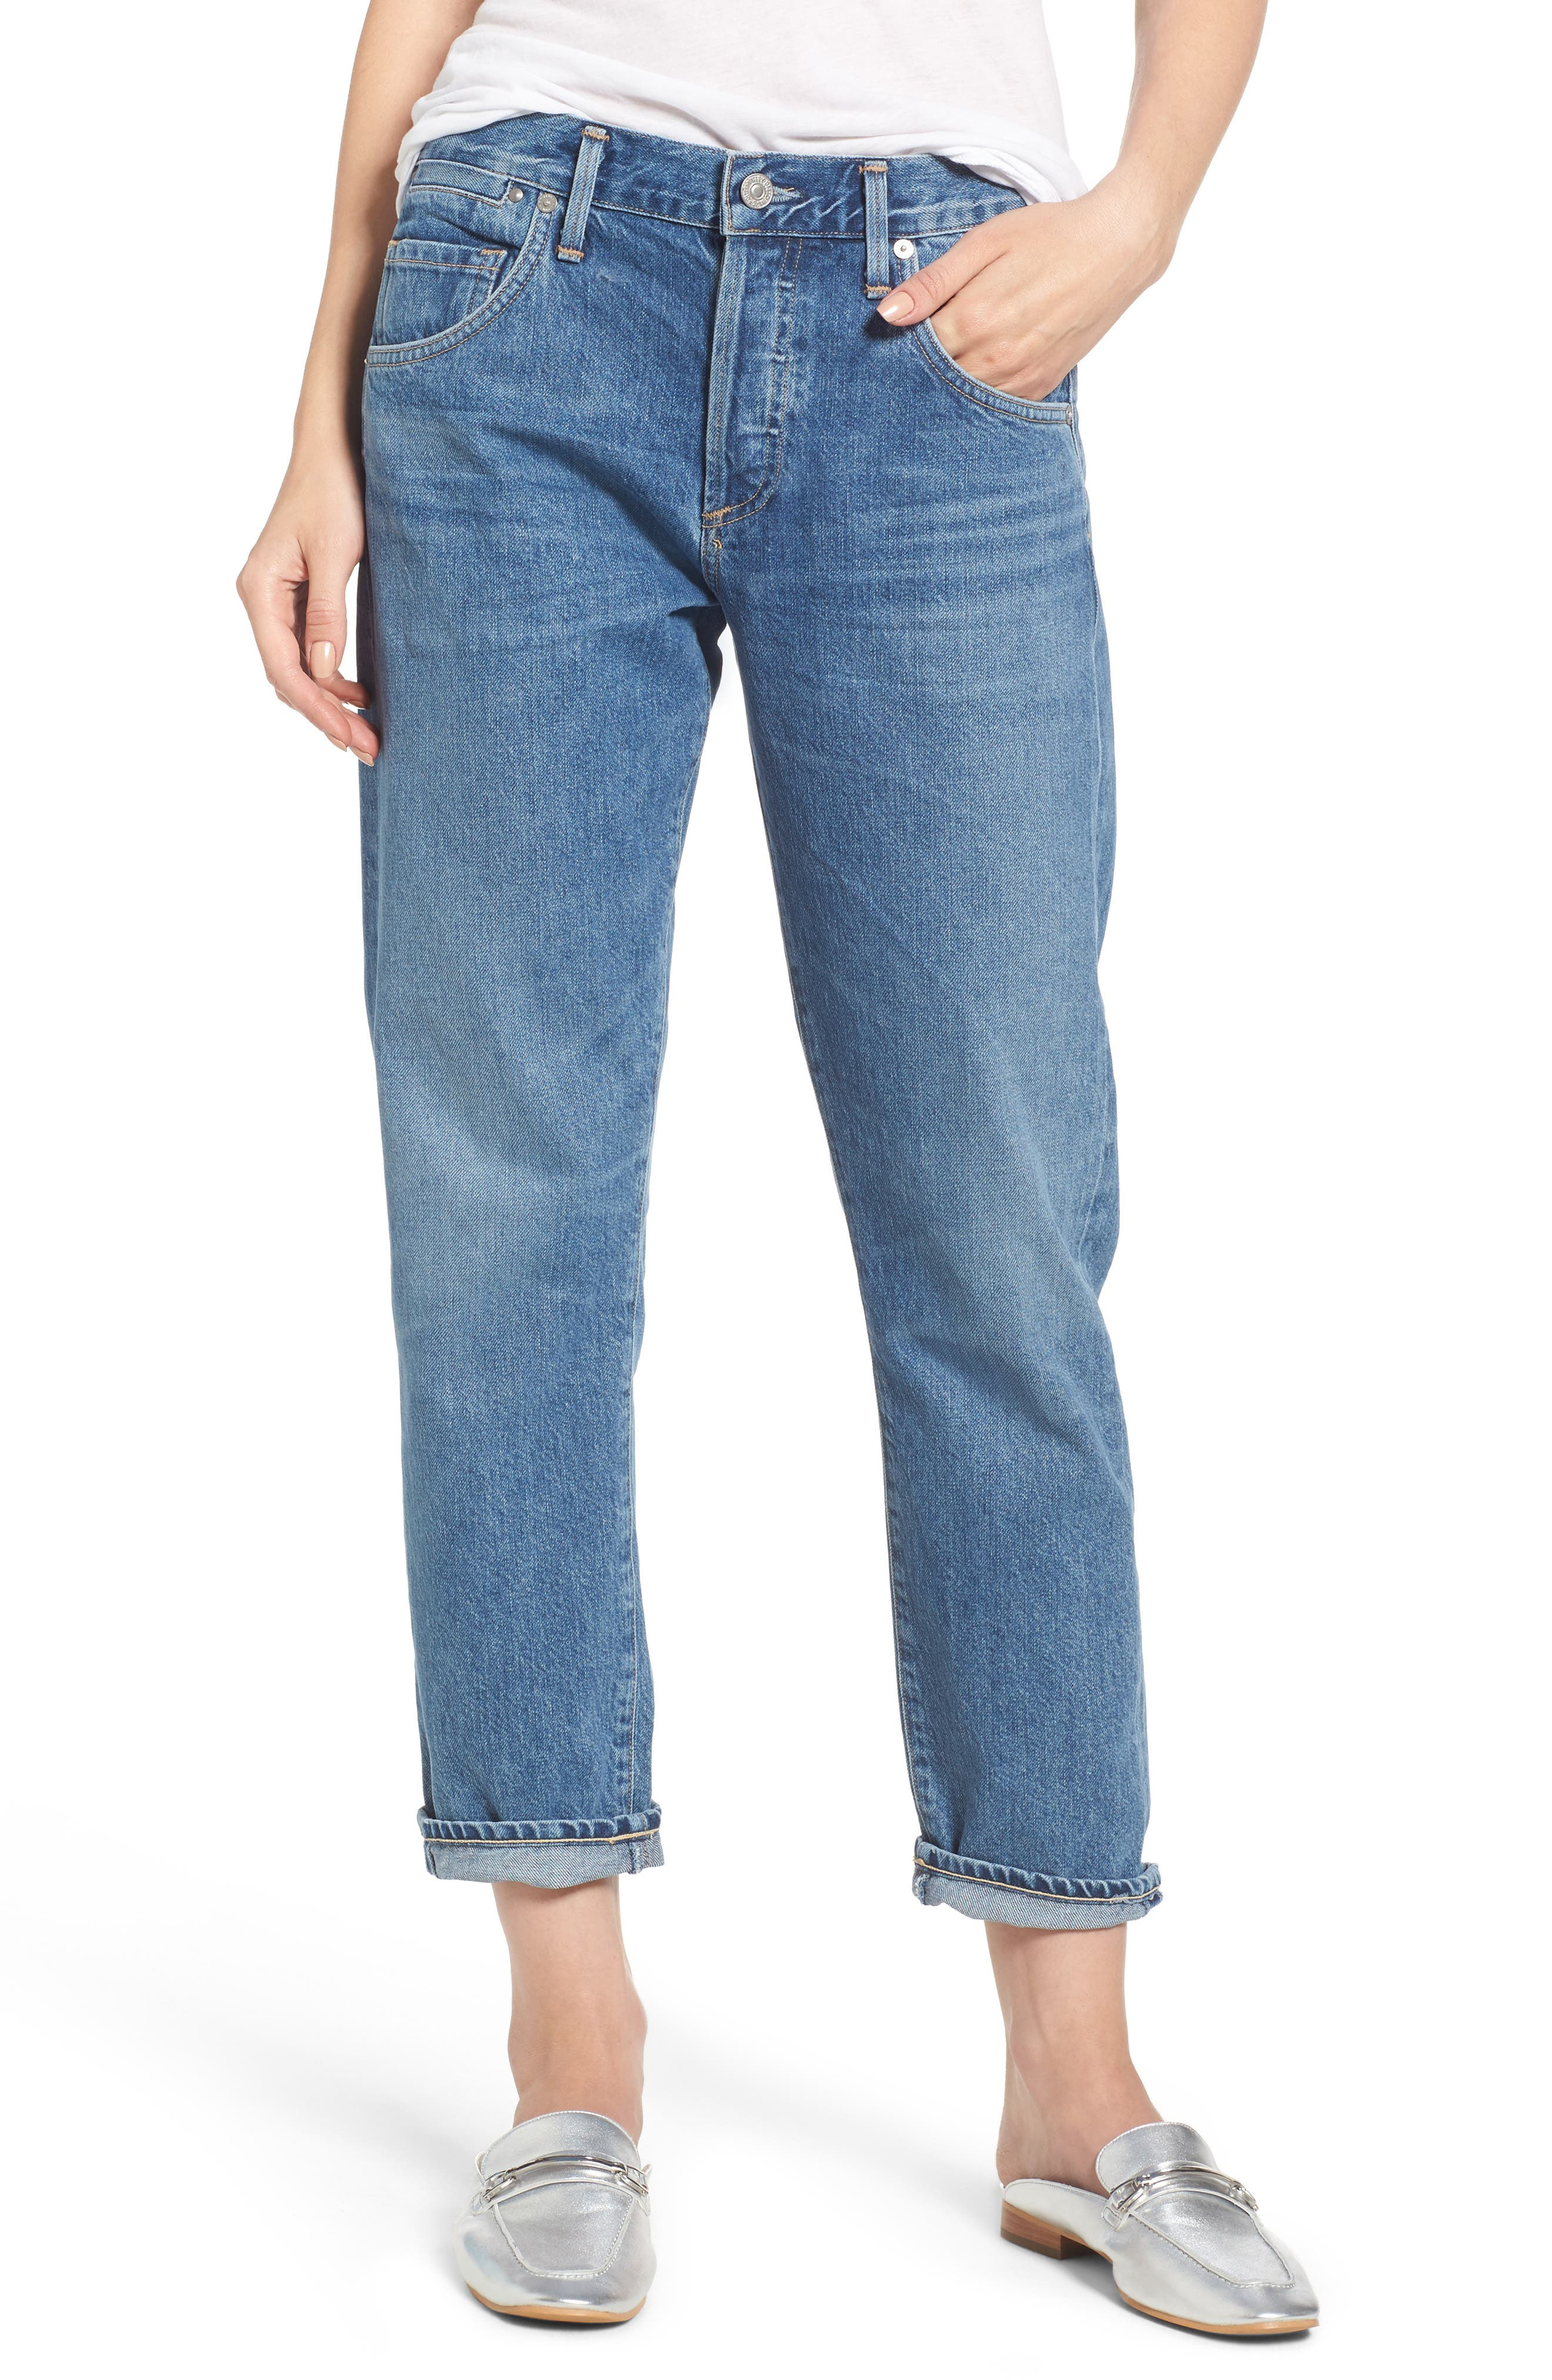 Emerson Slim Boyfriend Jeans,                             Main thumbnail 1, color,                             Dream On